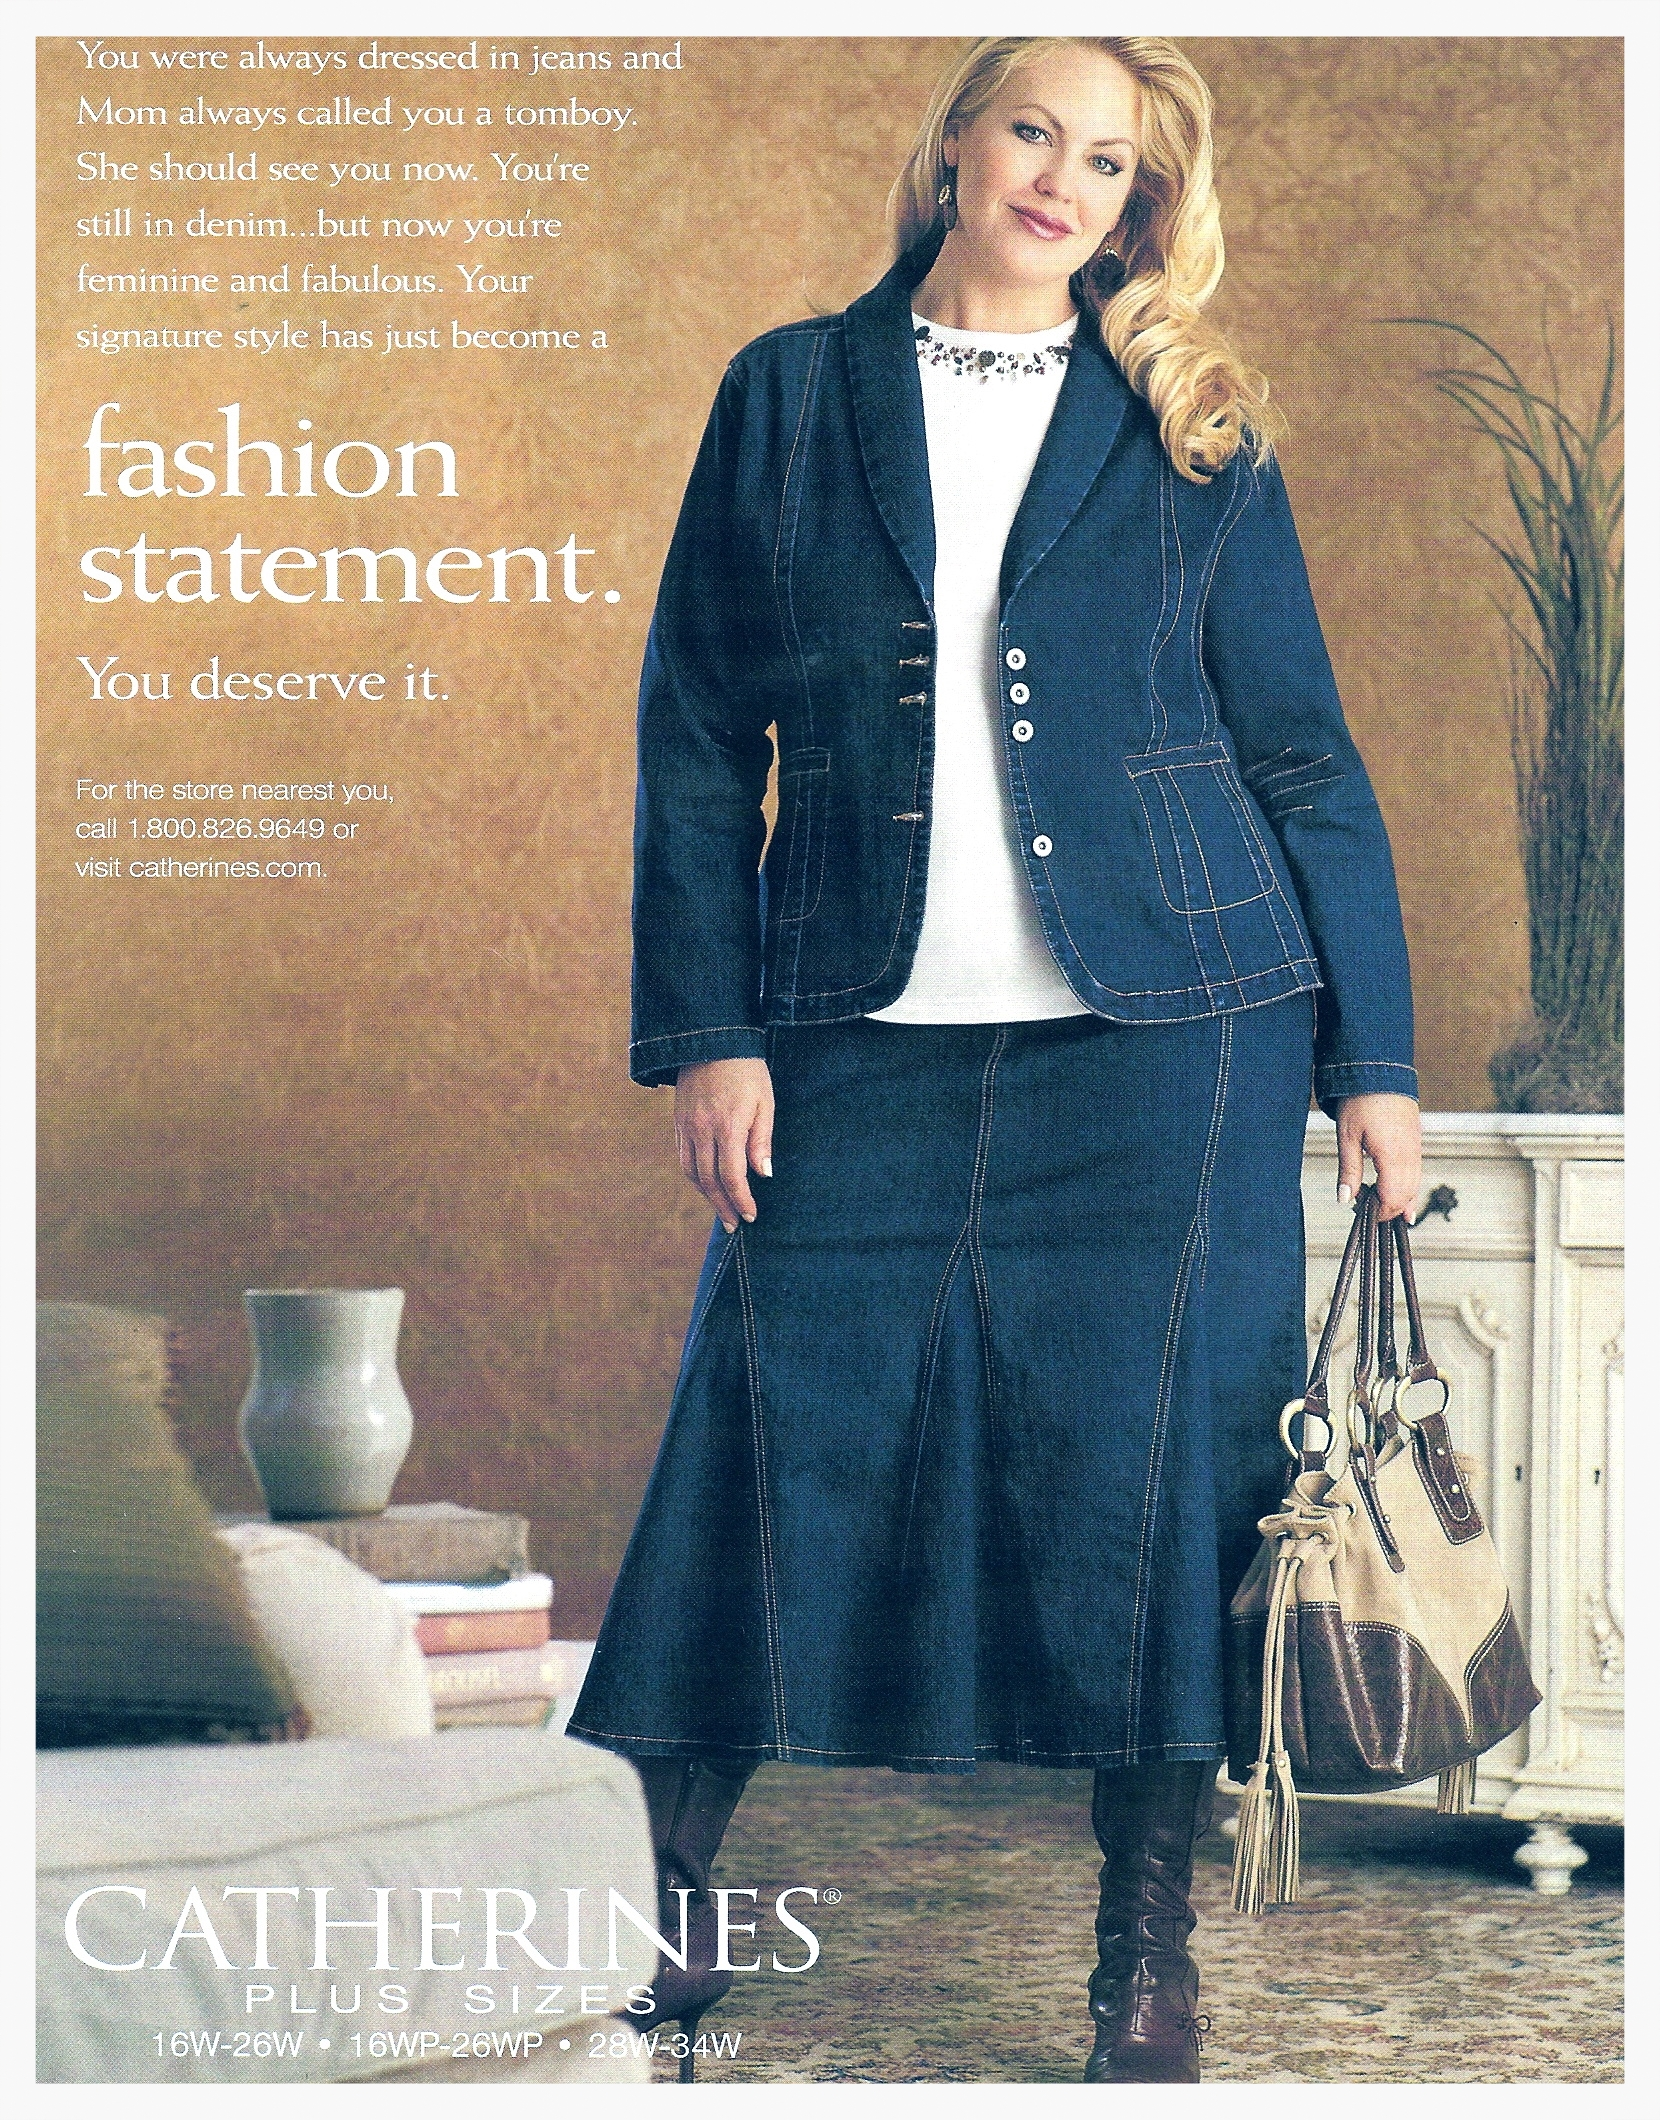 Catharine's Denim Ad.jpg